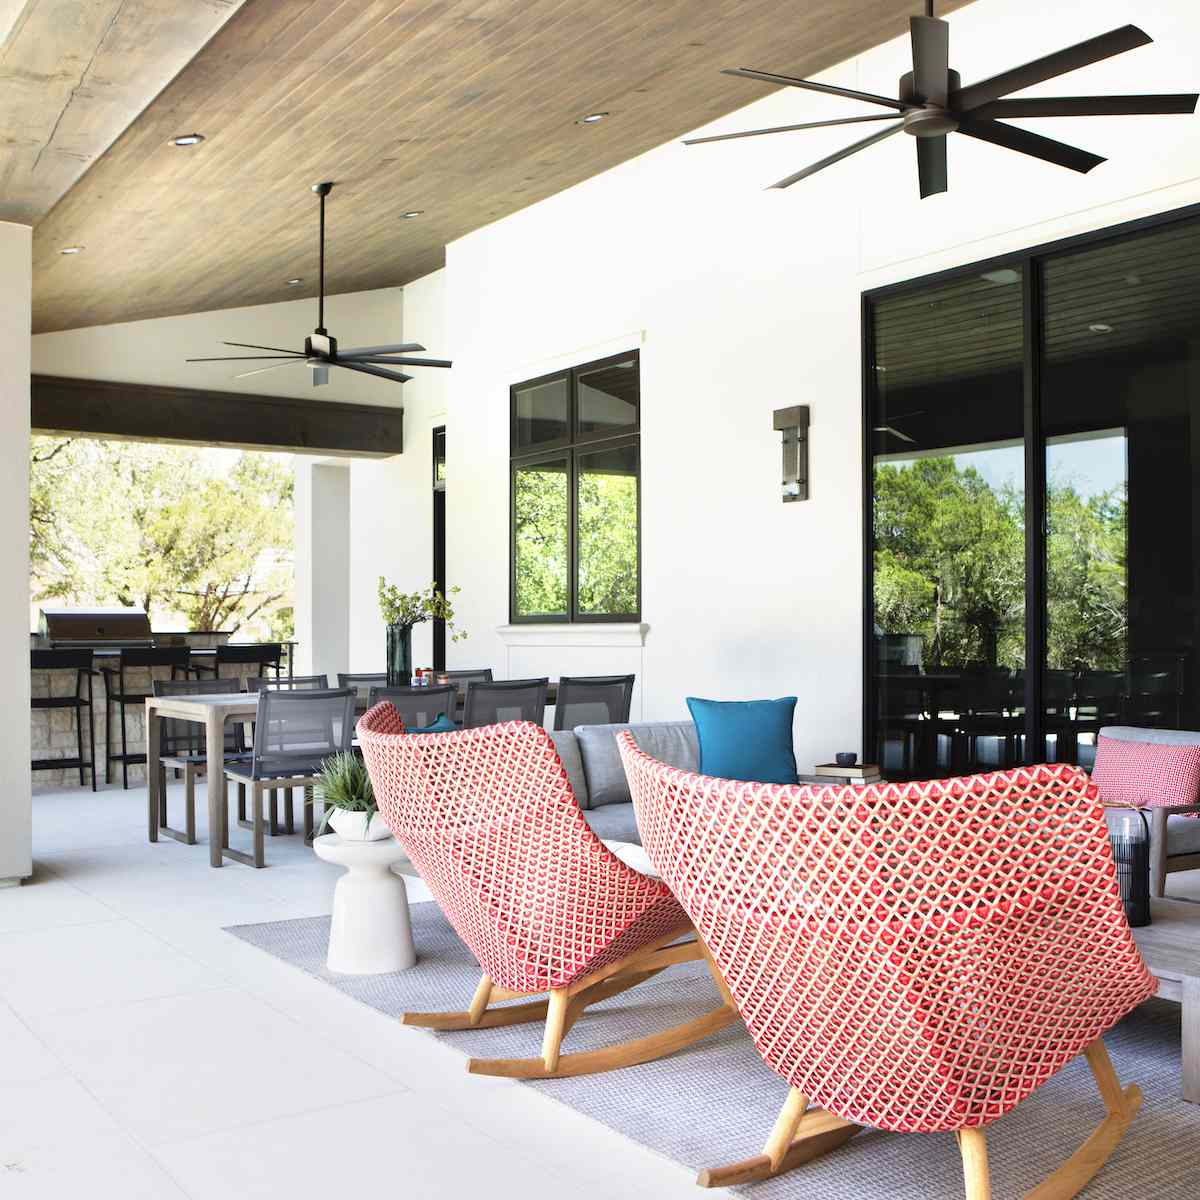 Outdoor deck with pink chairs